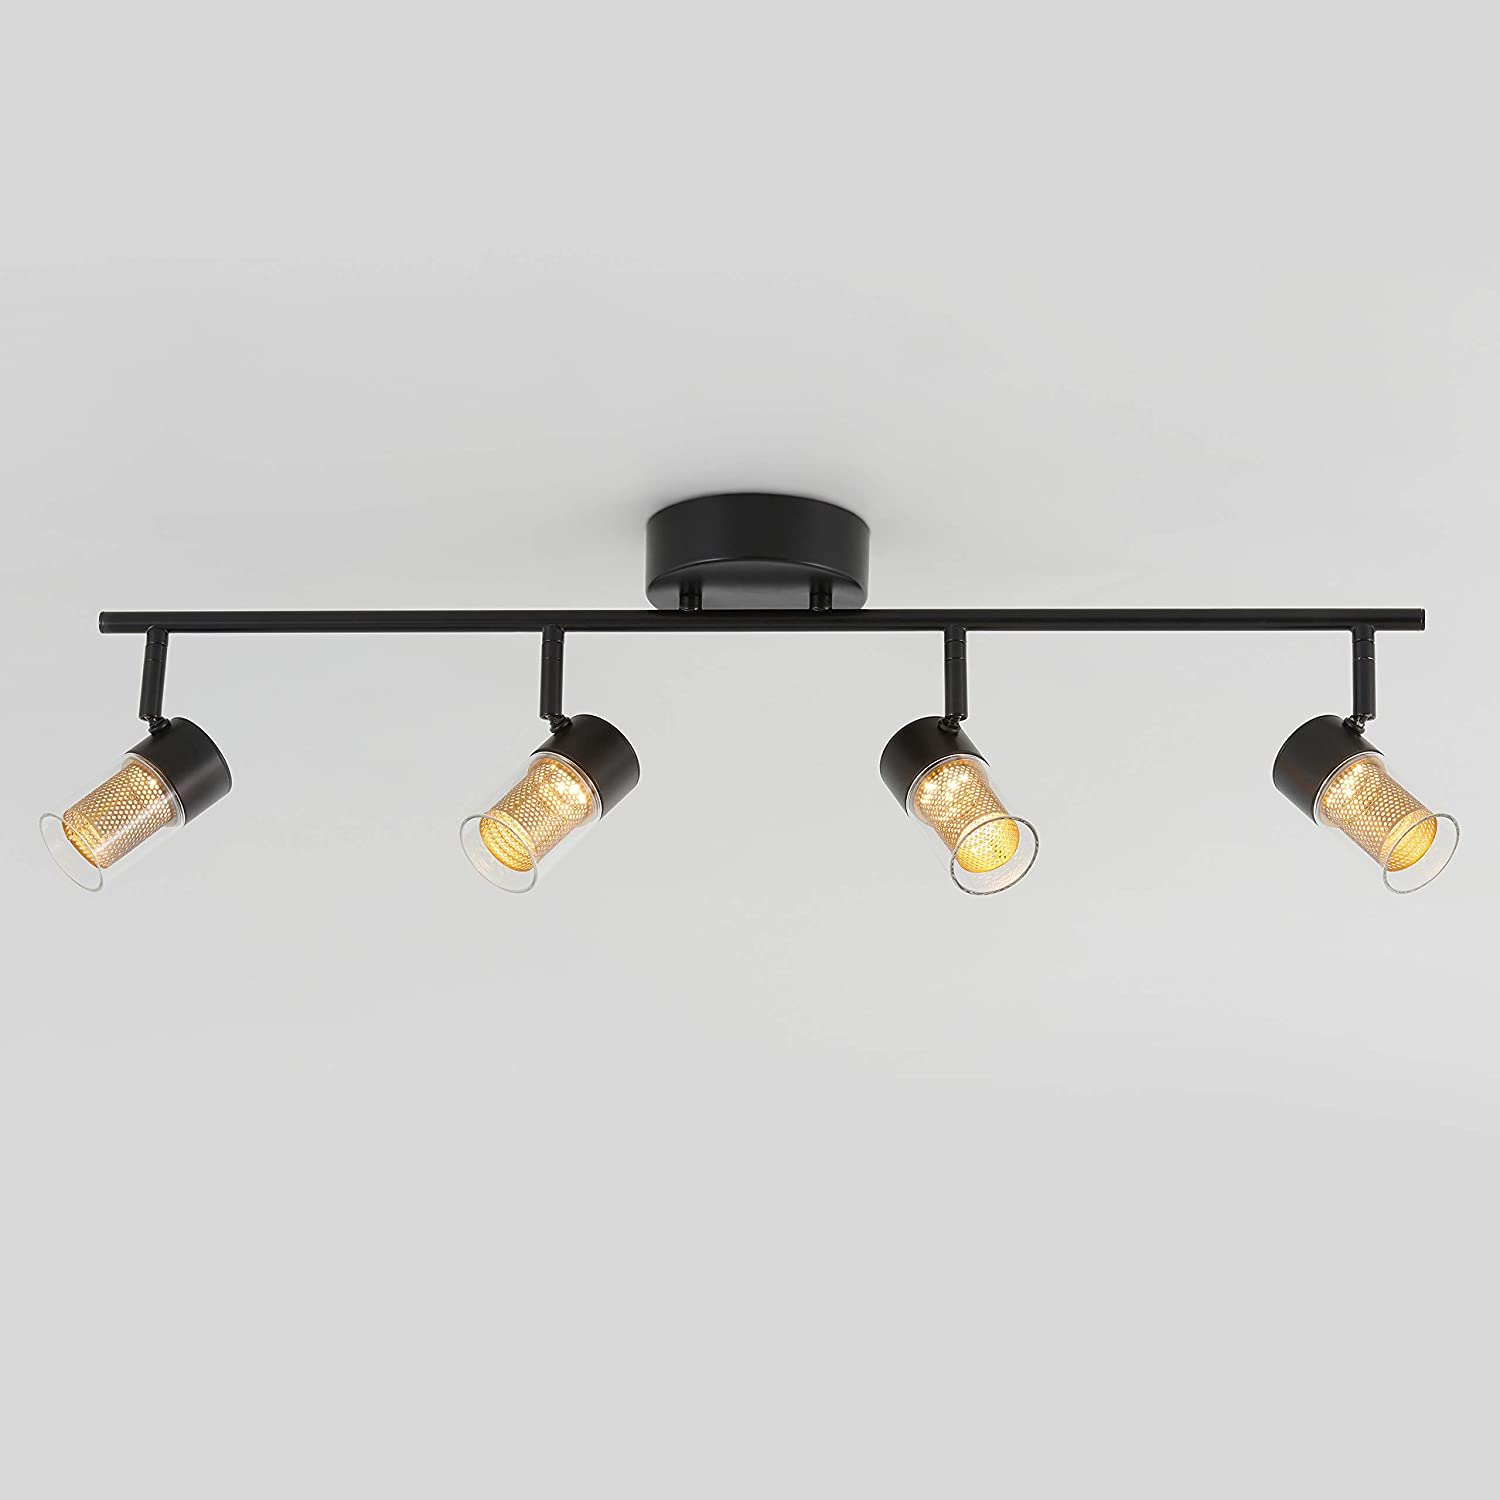 Amazon.com: Artika TRK4OX-B-RN Oxion Track 4 Light Fixture ...